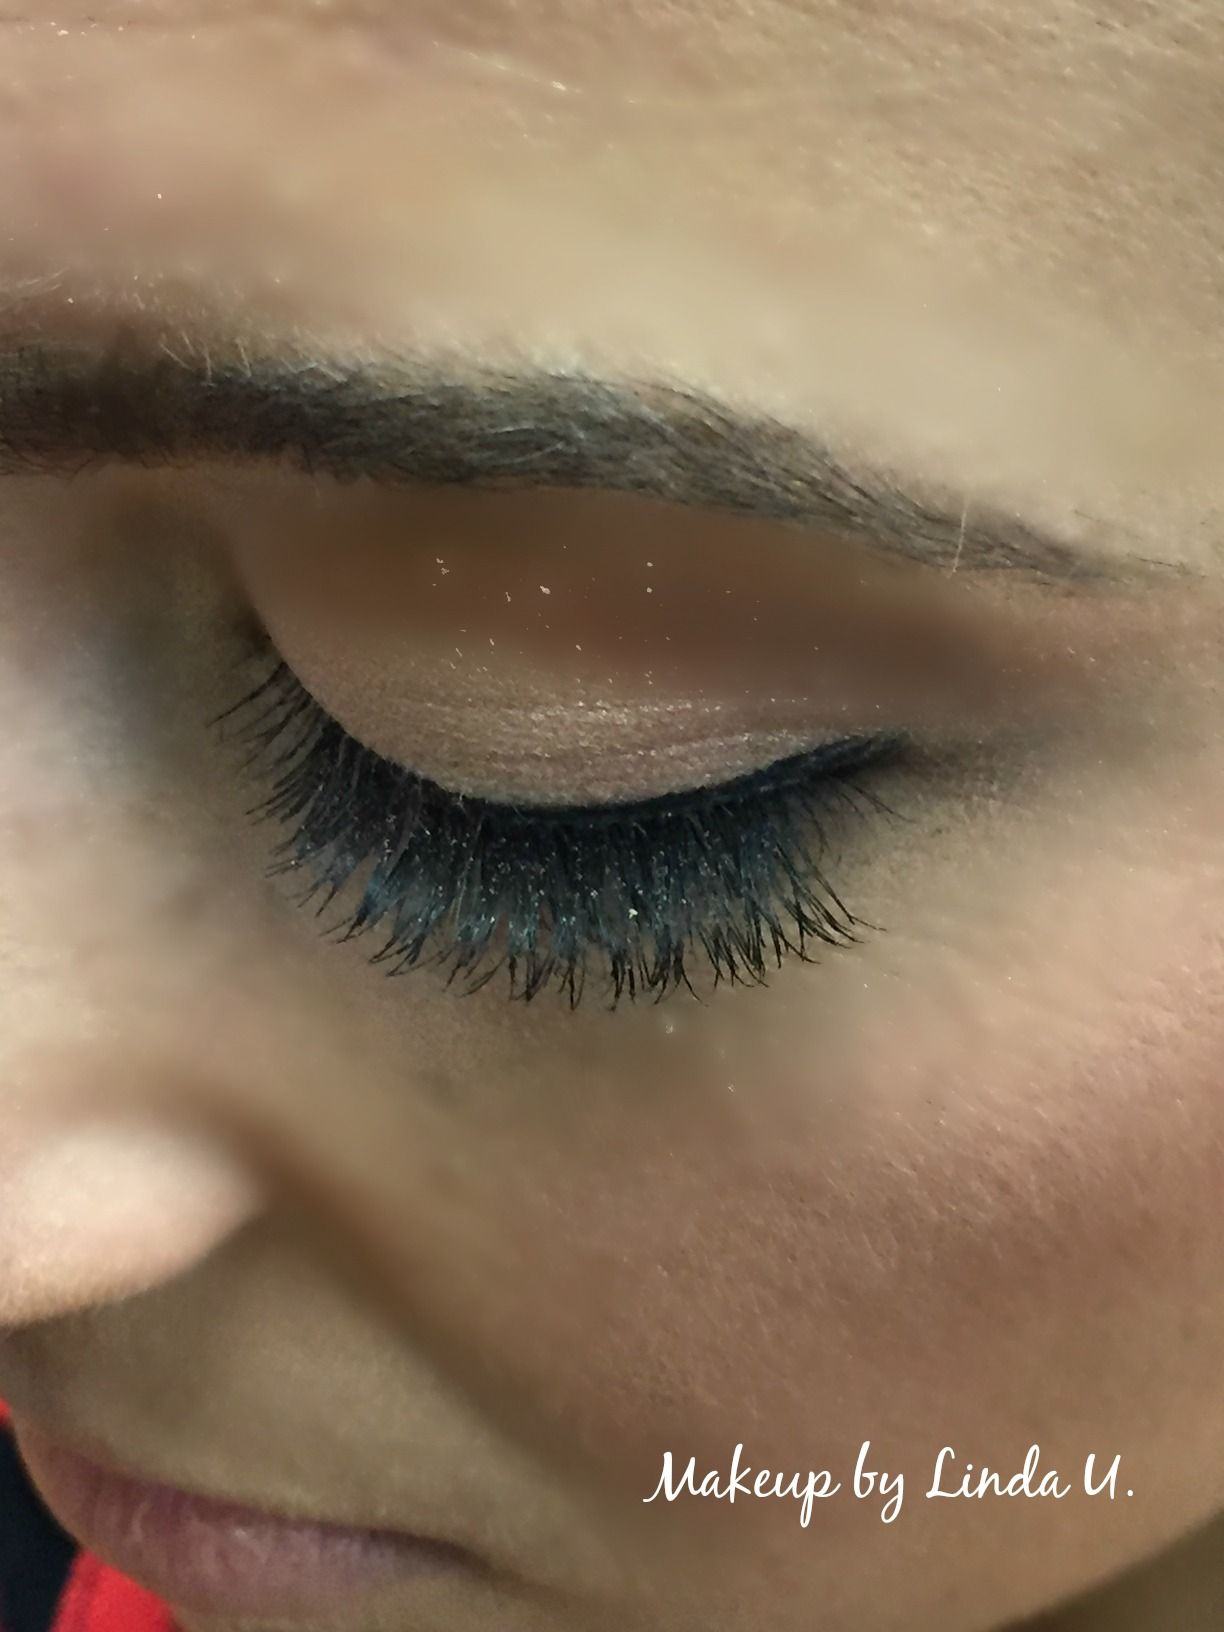 Temporary lashes add drama to your eyes for any special